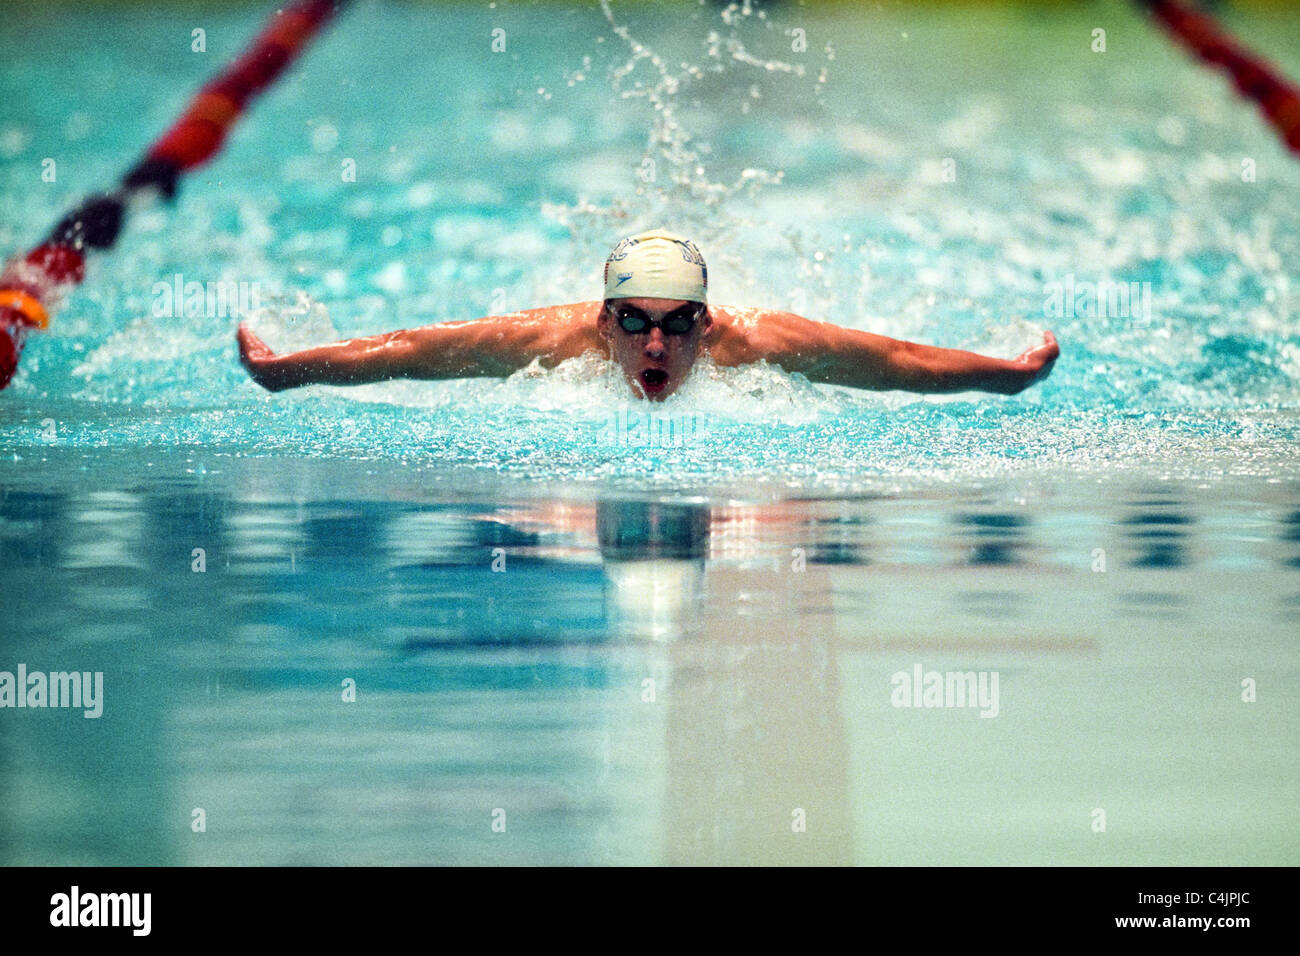 Michael Phelps (USA), 15 years old, at the 2000 USA Spring Nationals. - Stock Image